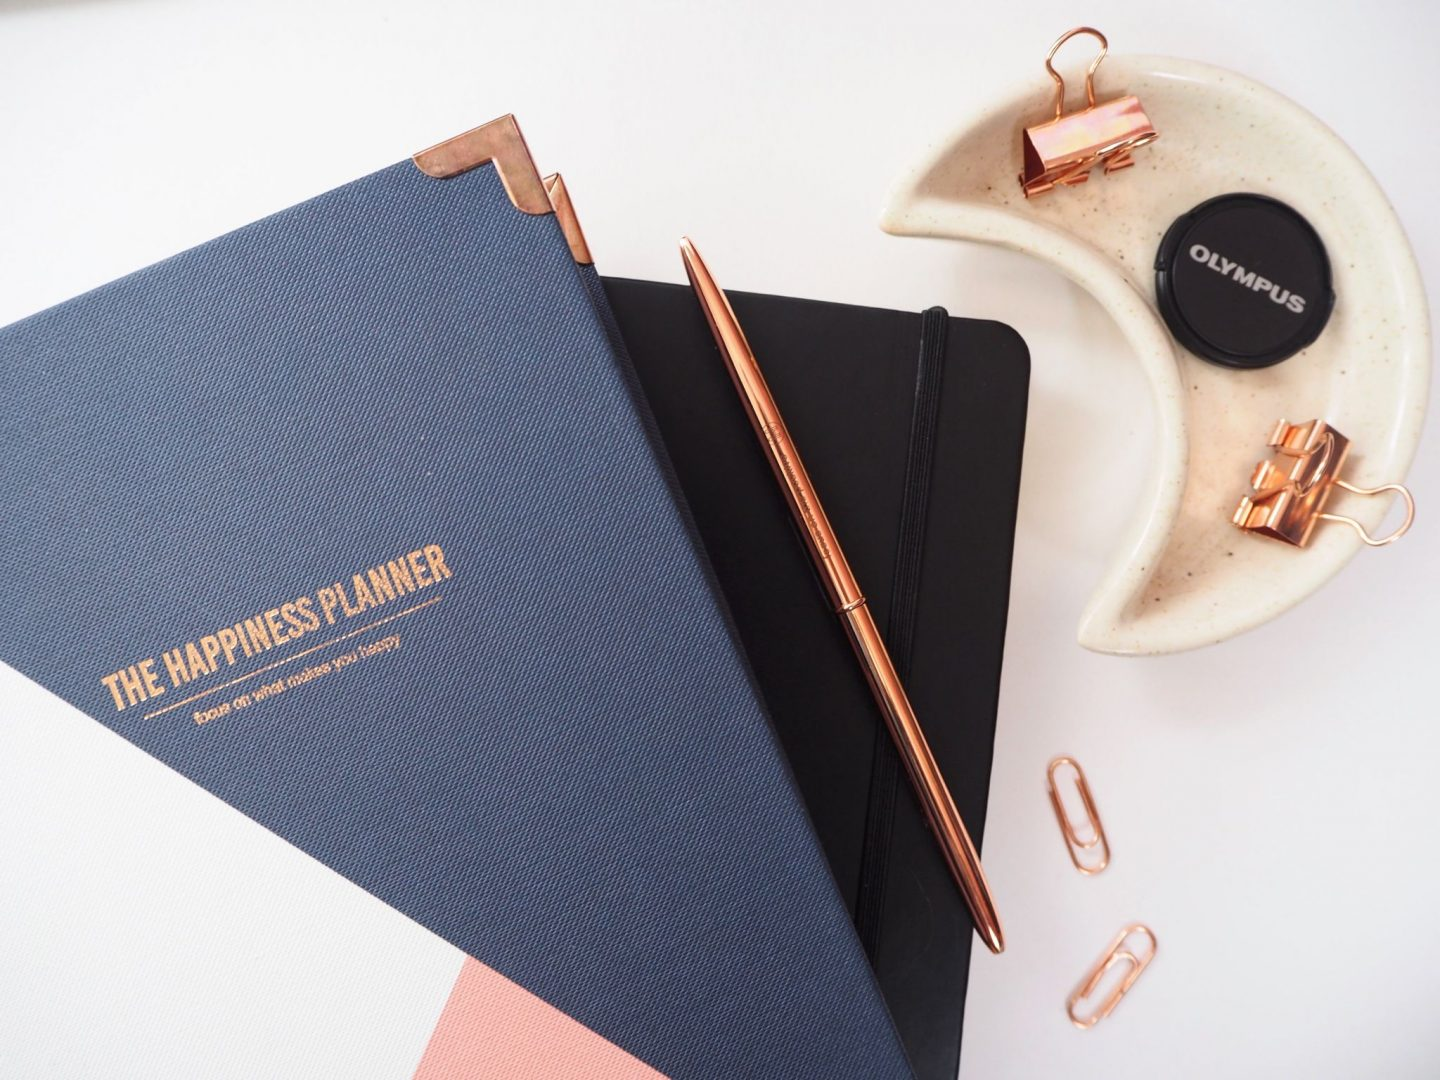 The pressure of feeling organised- happiness planner, pen & trinkets flatlay